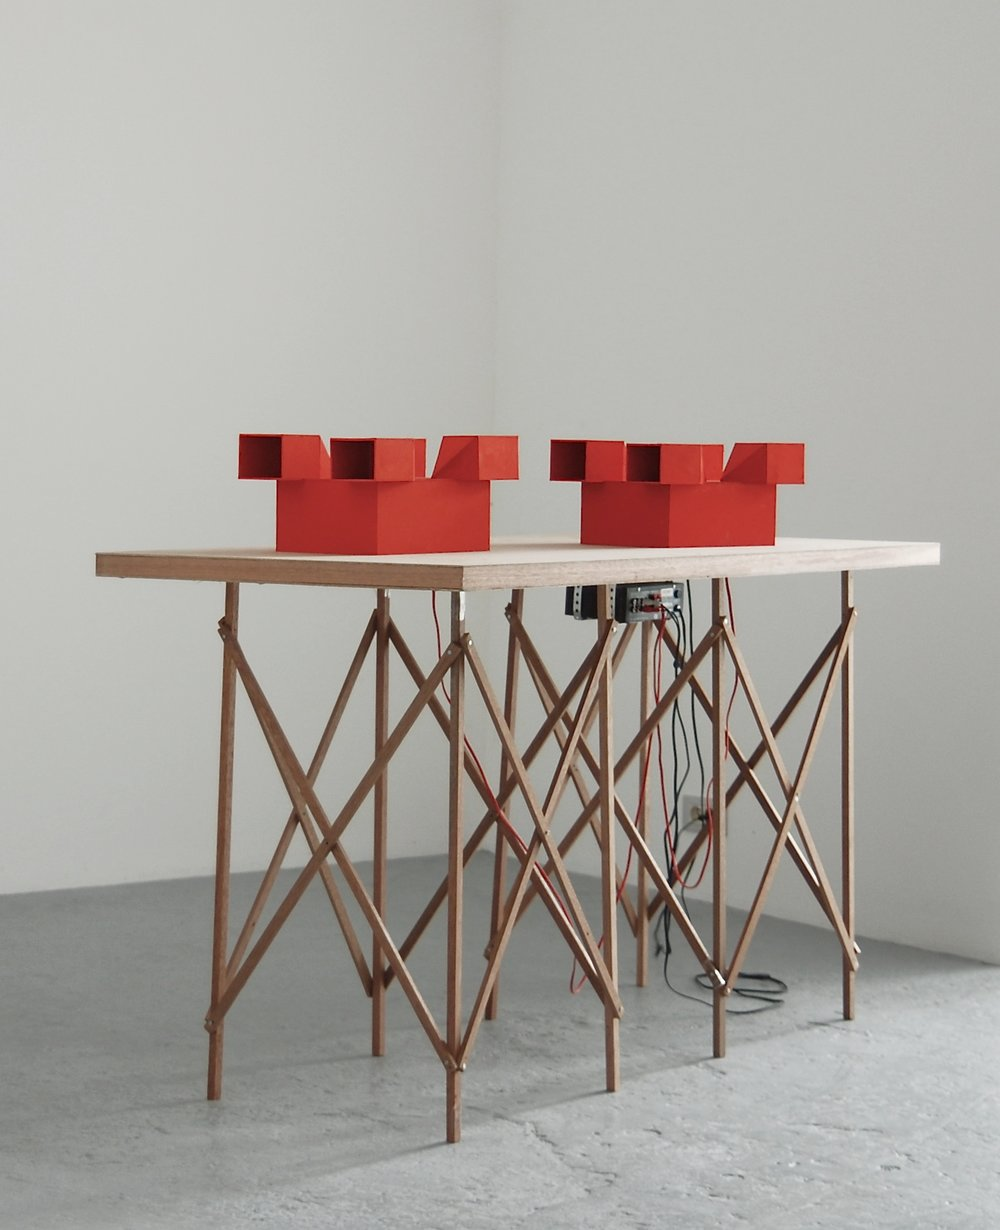 Jean-Pascal Flavien,  Discussion,  2007, table, cardboard models, speakers, ipod, sound, 105 x 150 x 70 cm